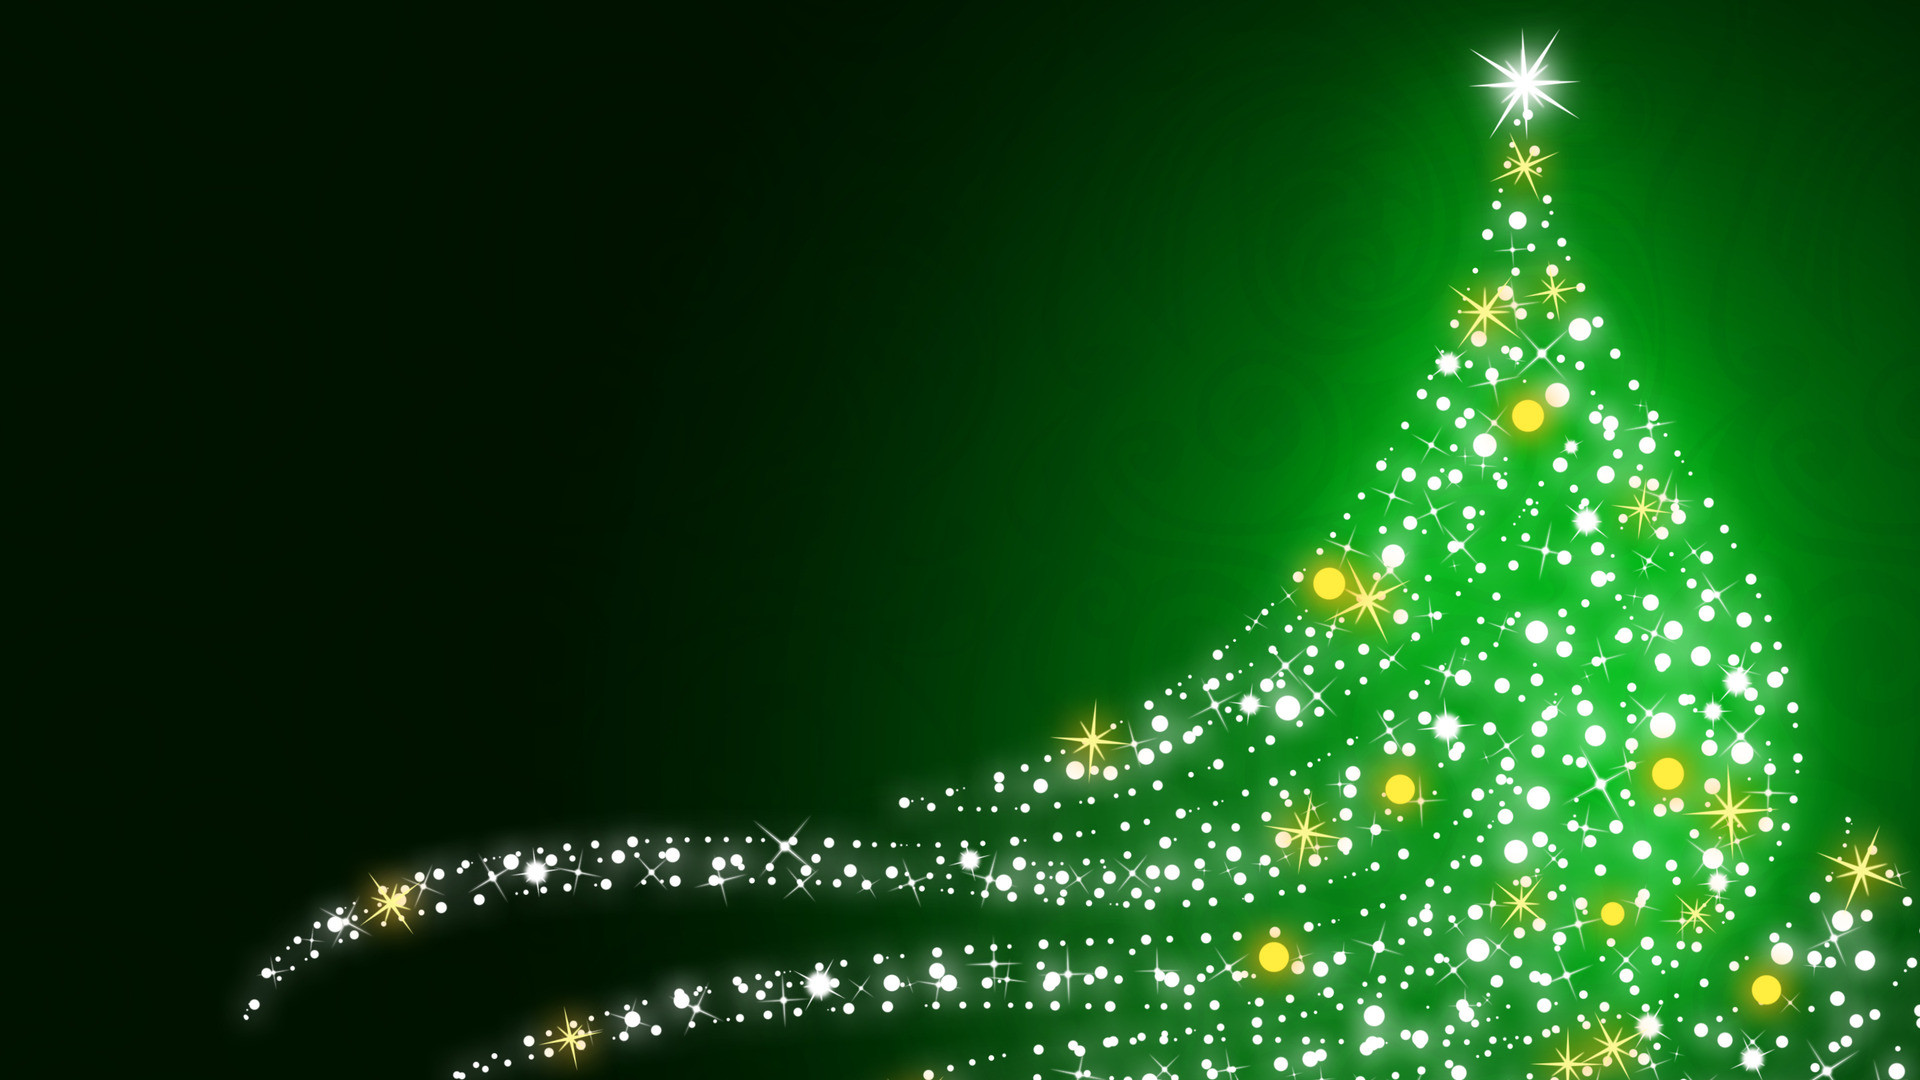 1920x1080 7. free-christmas-wallpaper7-600x338